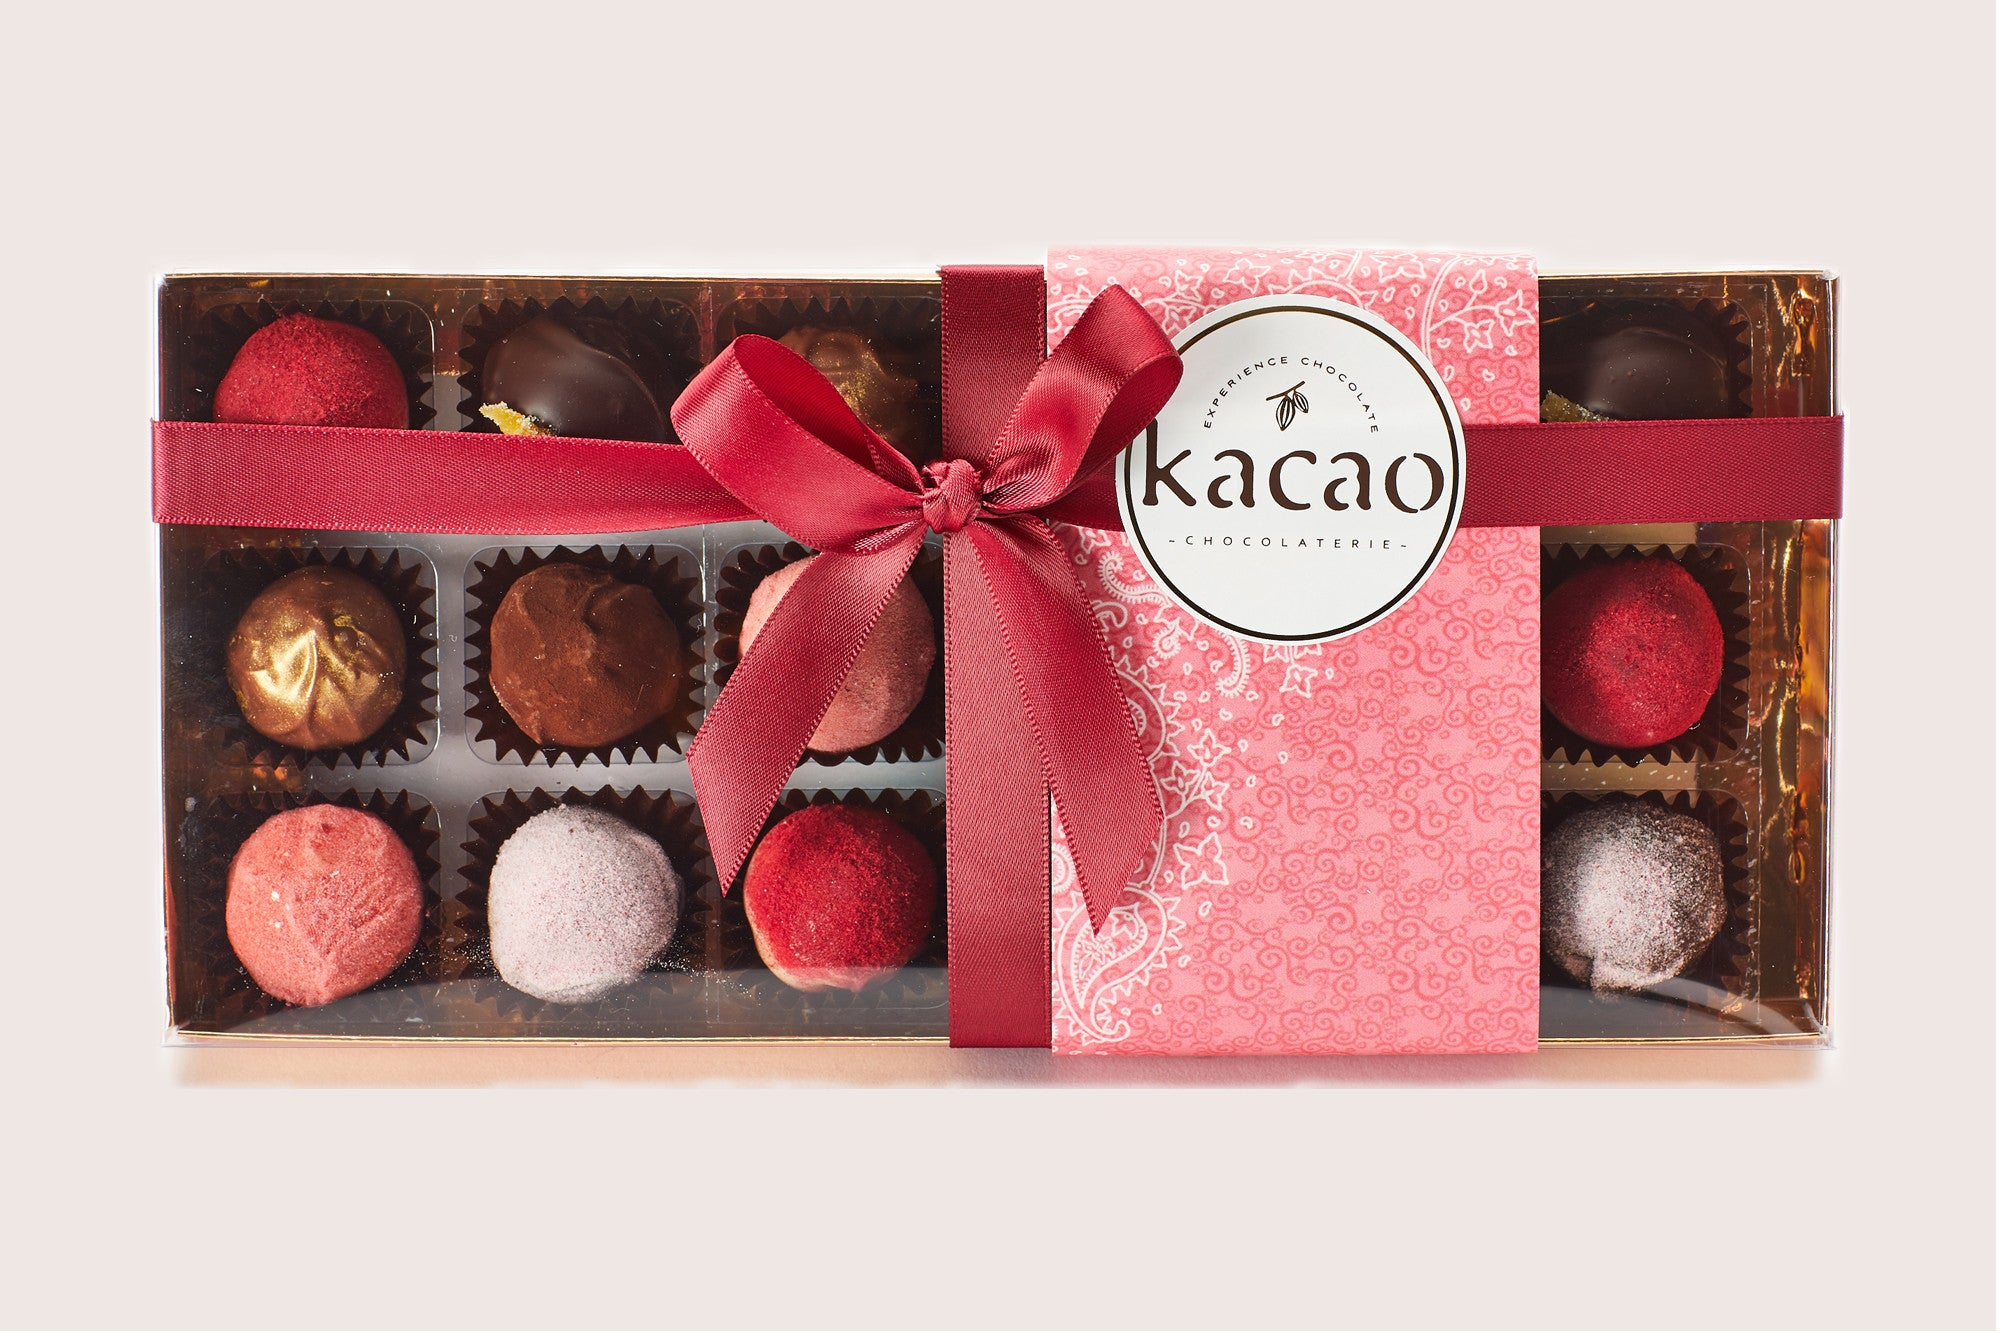 Kacao Truffle Experience Box of 18